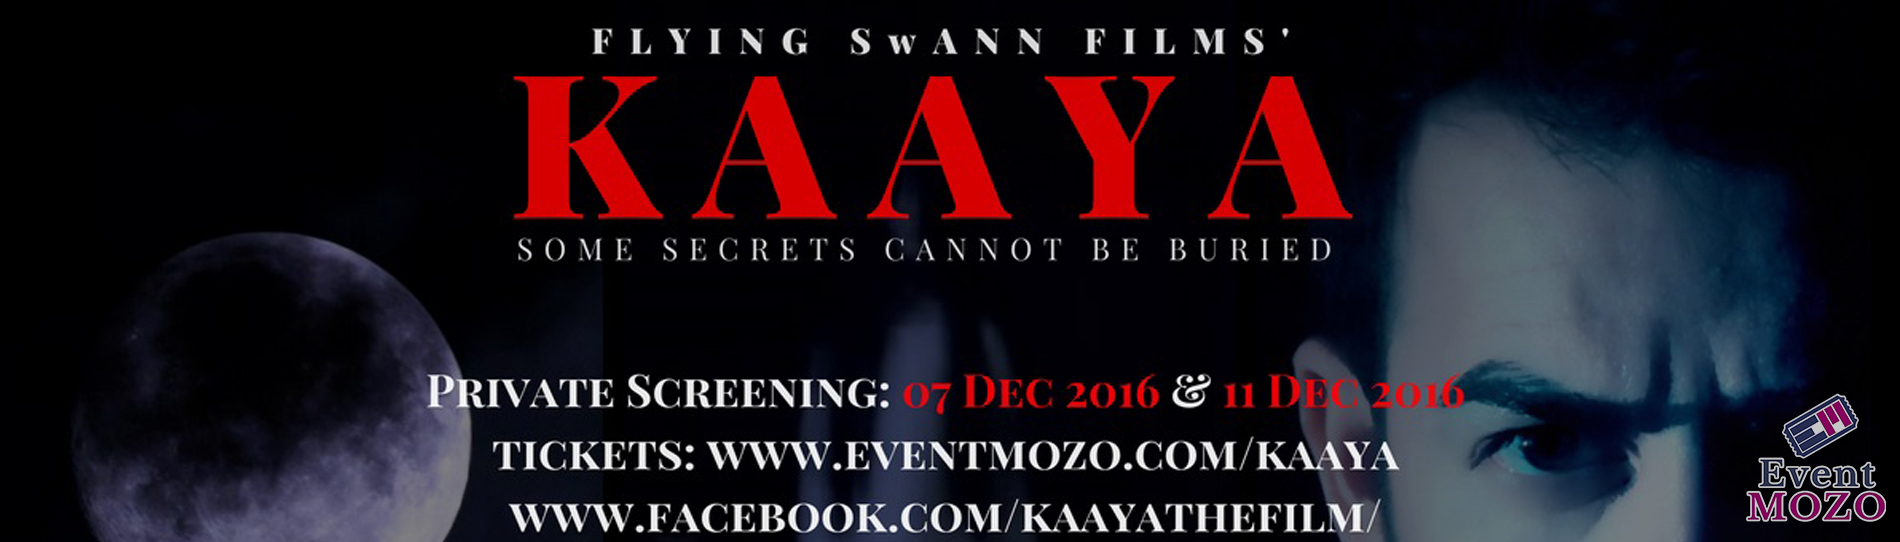 EventMozo Kaaya - Private Film Screenings